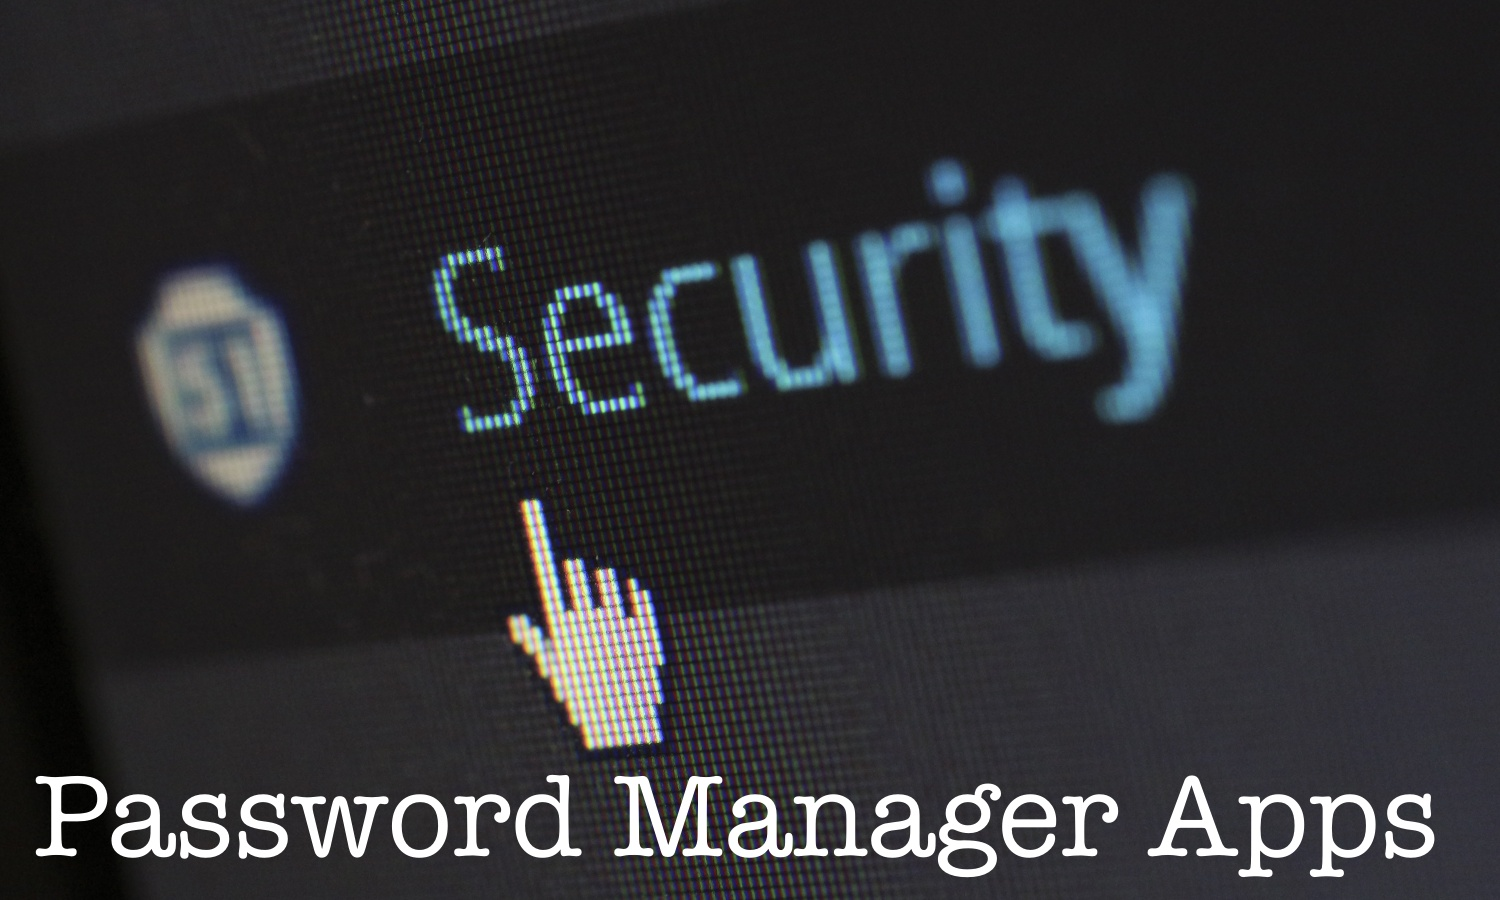 Best Password Manager Apps for iPhone & iPad